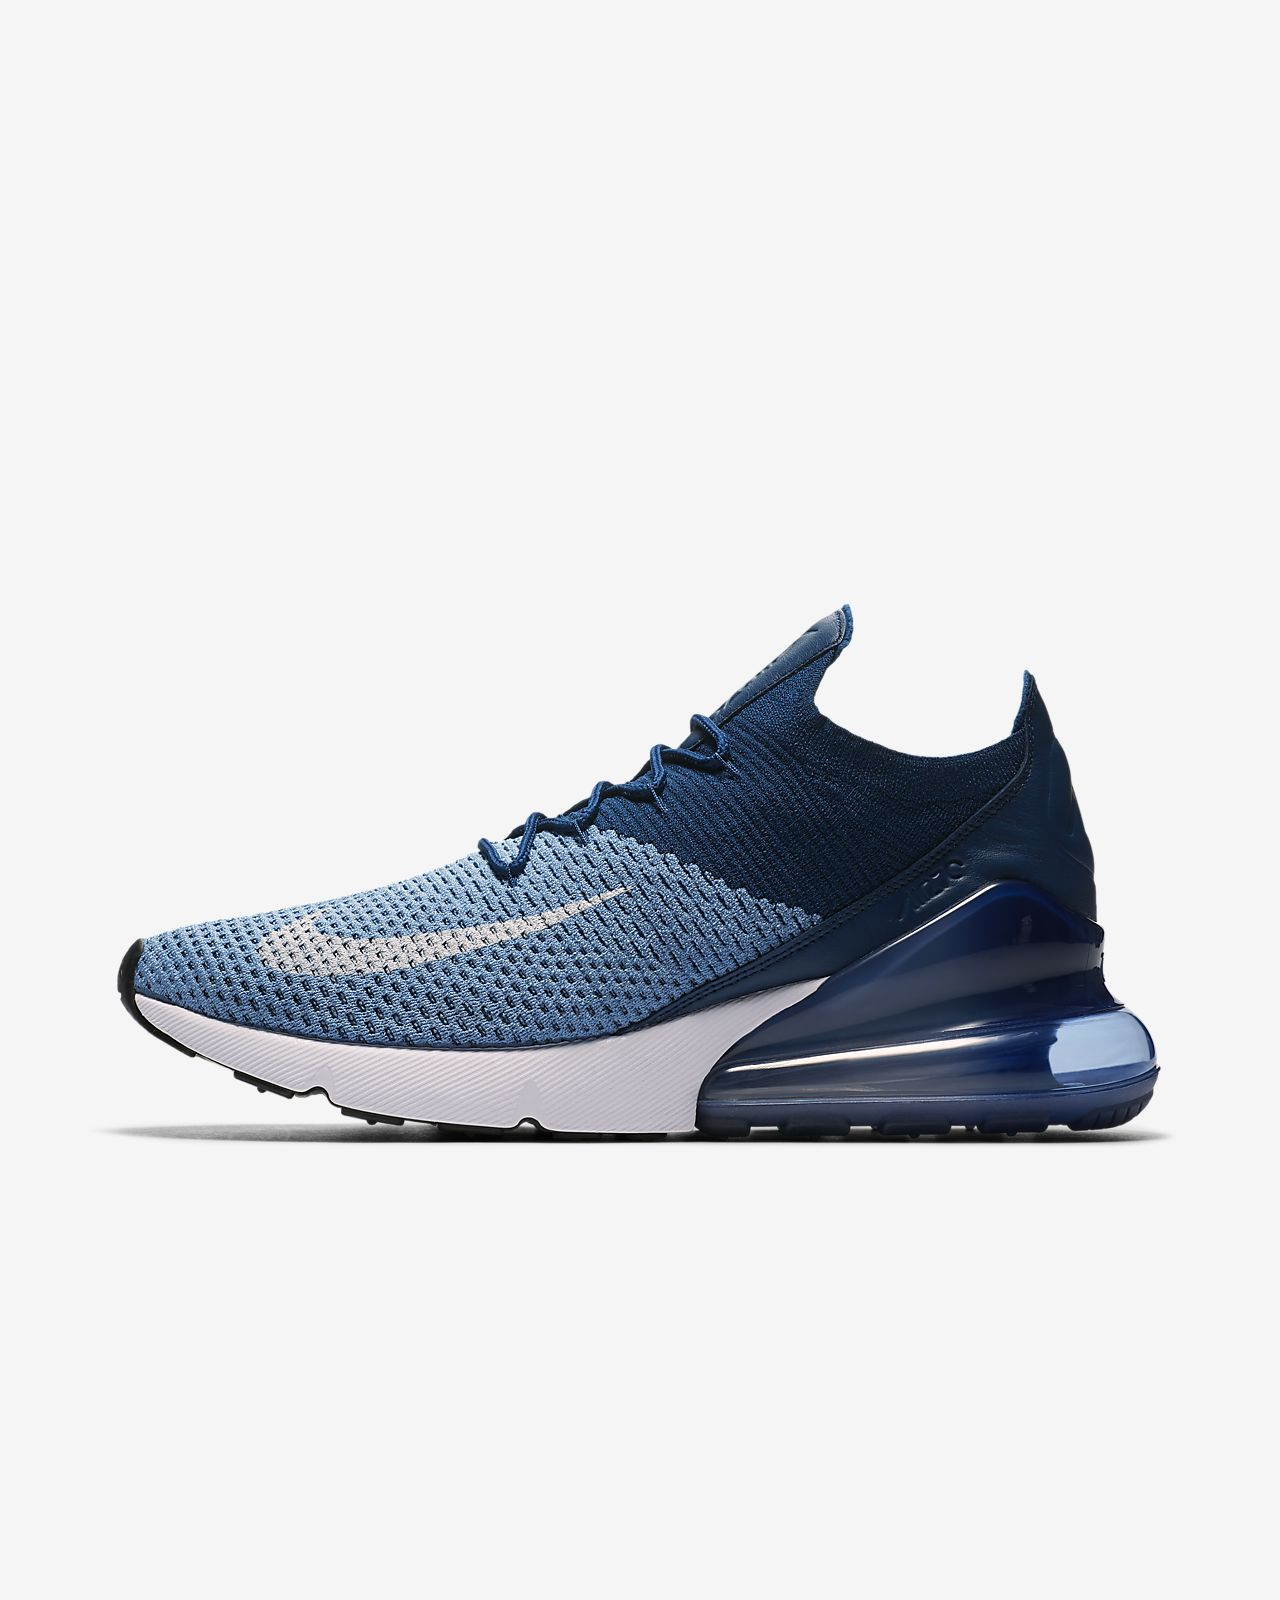 Nike Air Max 270 Flyknit Blanche Air Max 270 Pour Homme